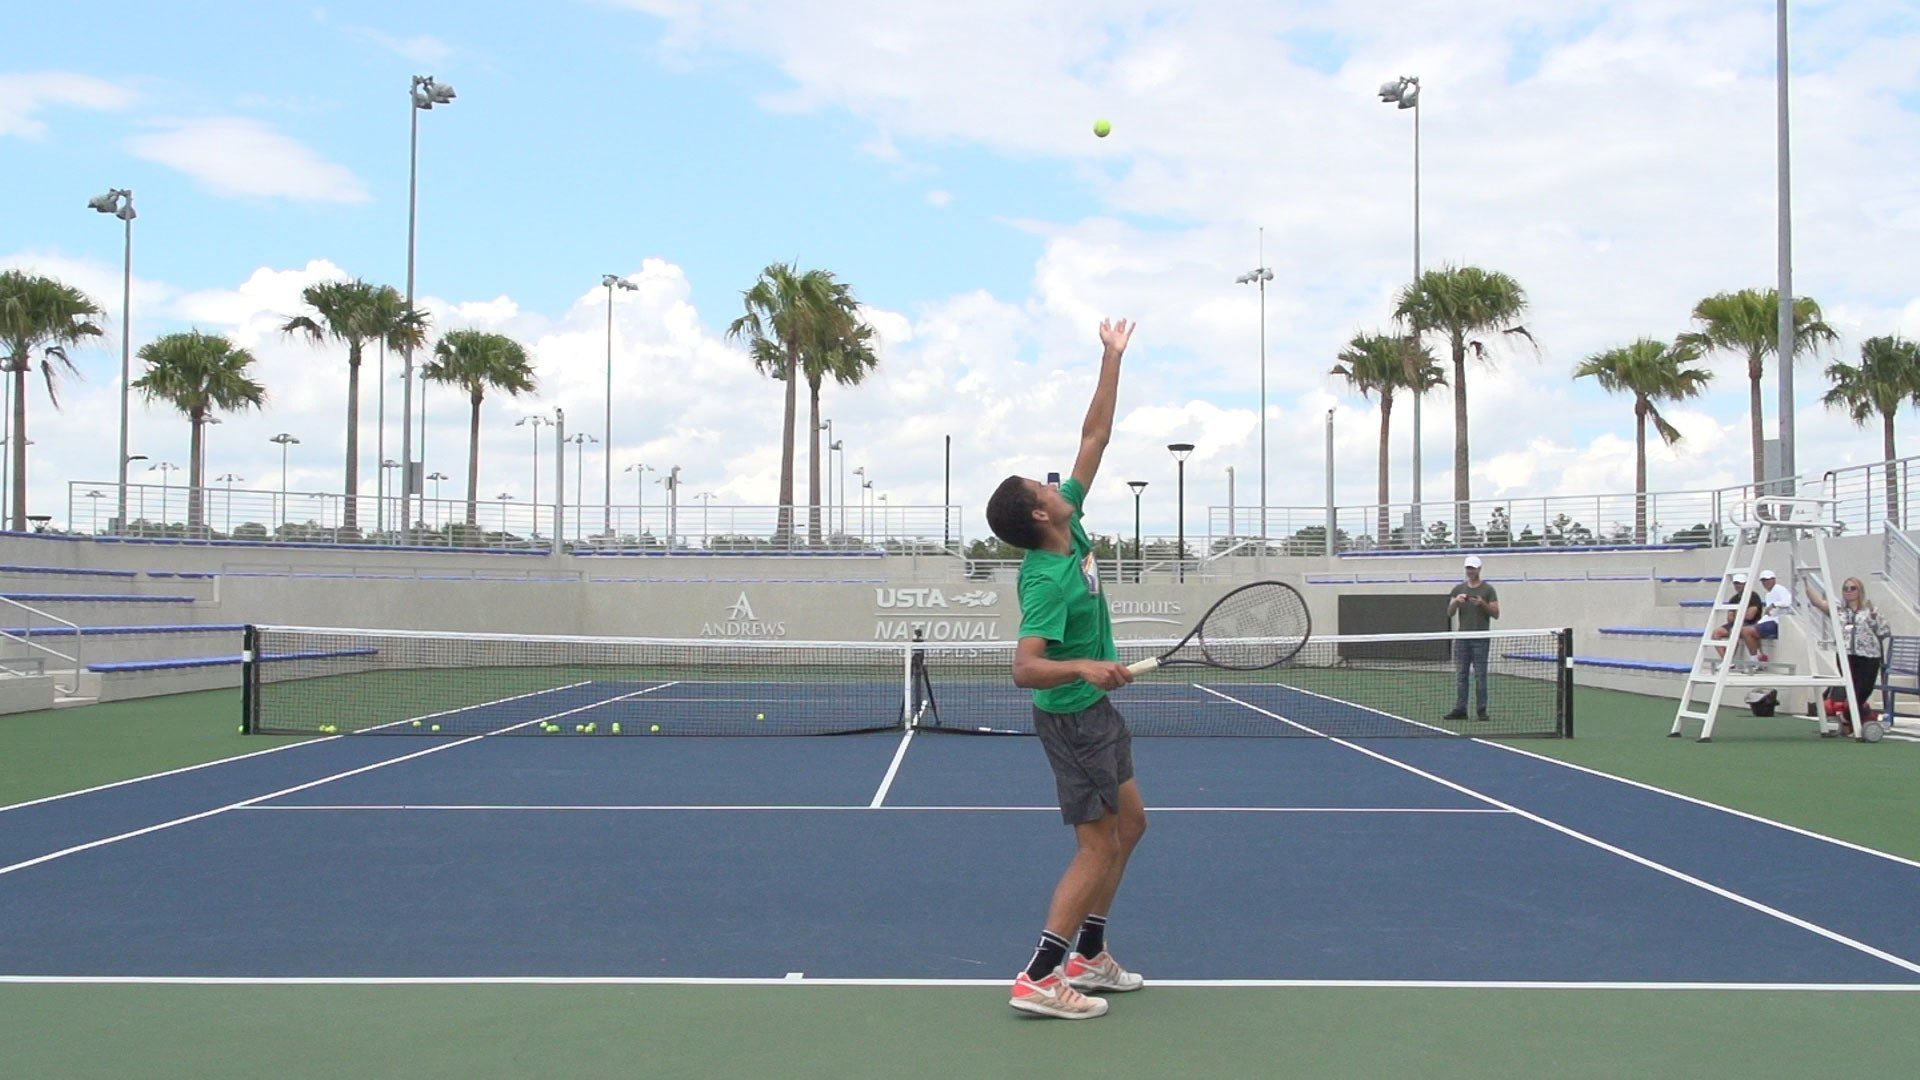 Know the Fundamental Steps to Learn How to Play Tennis